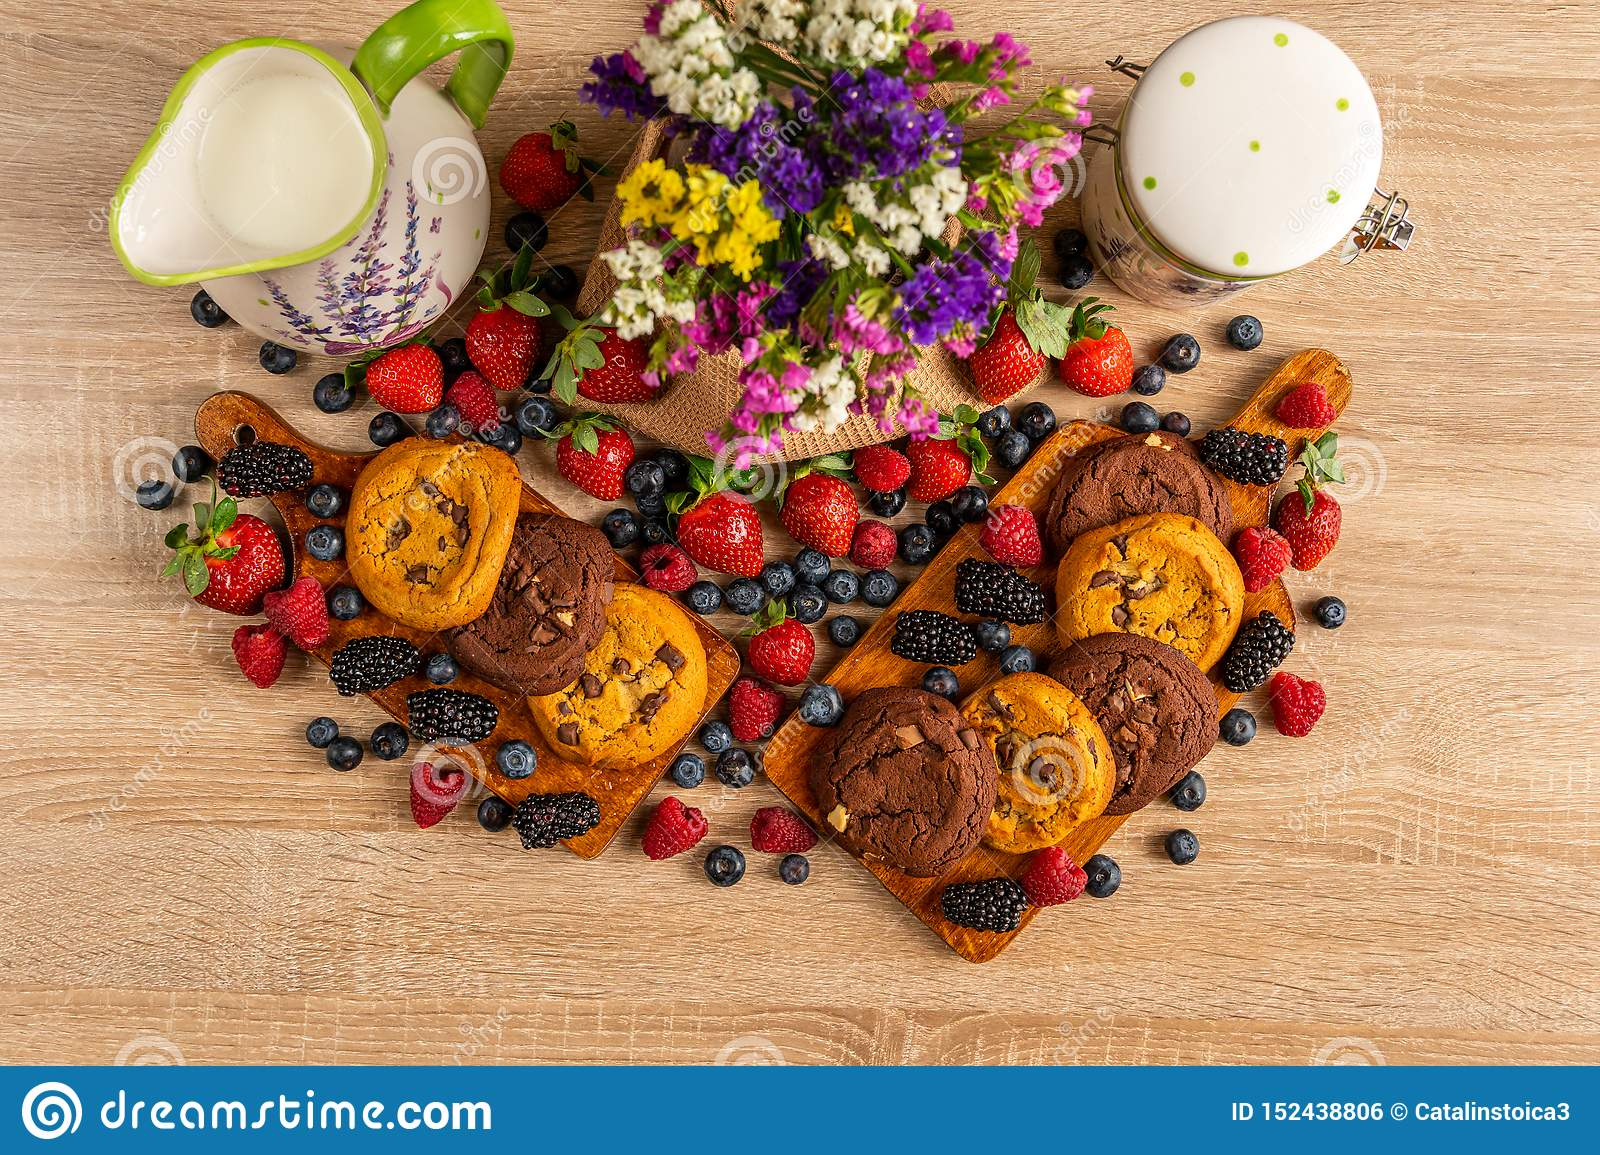 Colorful assorted mix of wild berries, brown cookies, milk and flowers